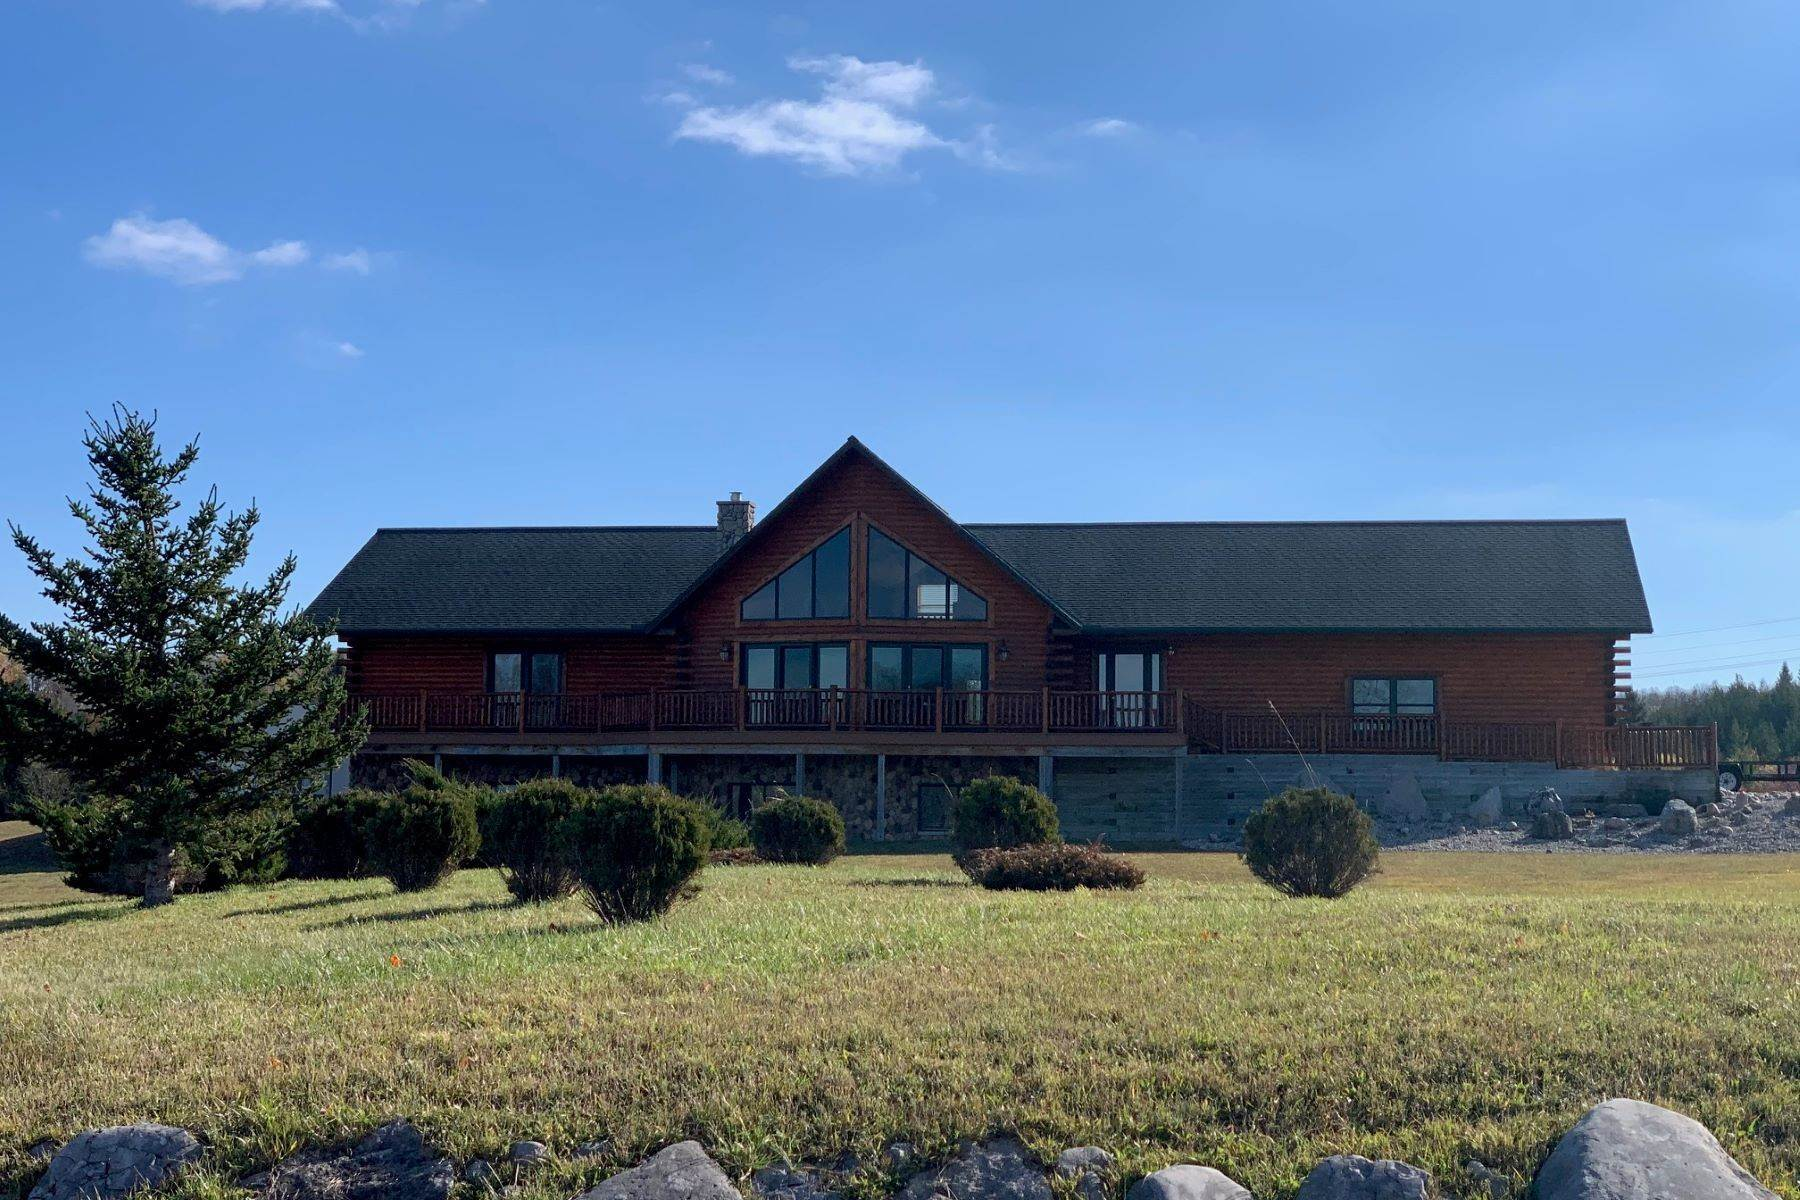 Single Family Homes for Sale at Inviting and attractive custom-crafted log home 1555 Lake Grove Petoskey, Michigan 49770 United States